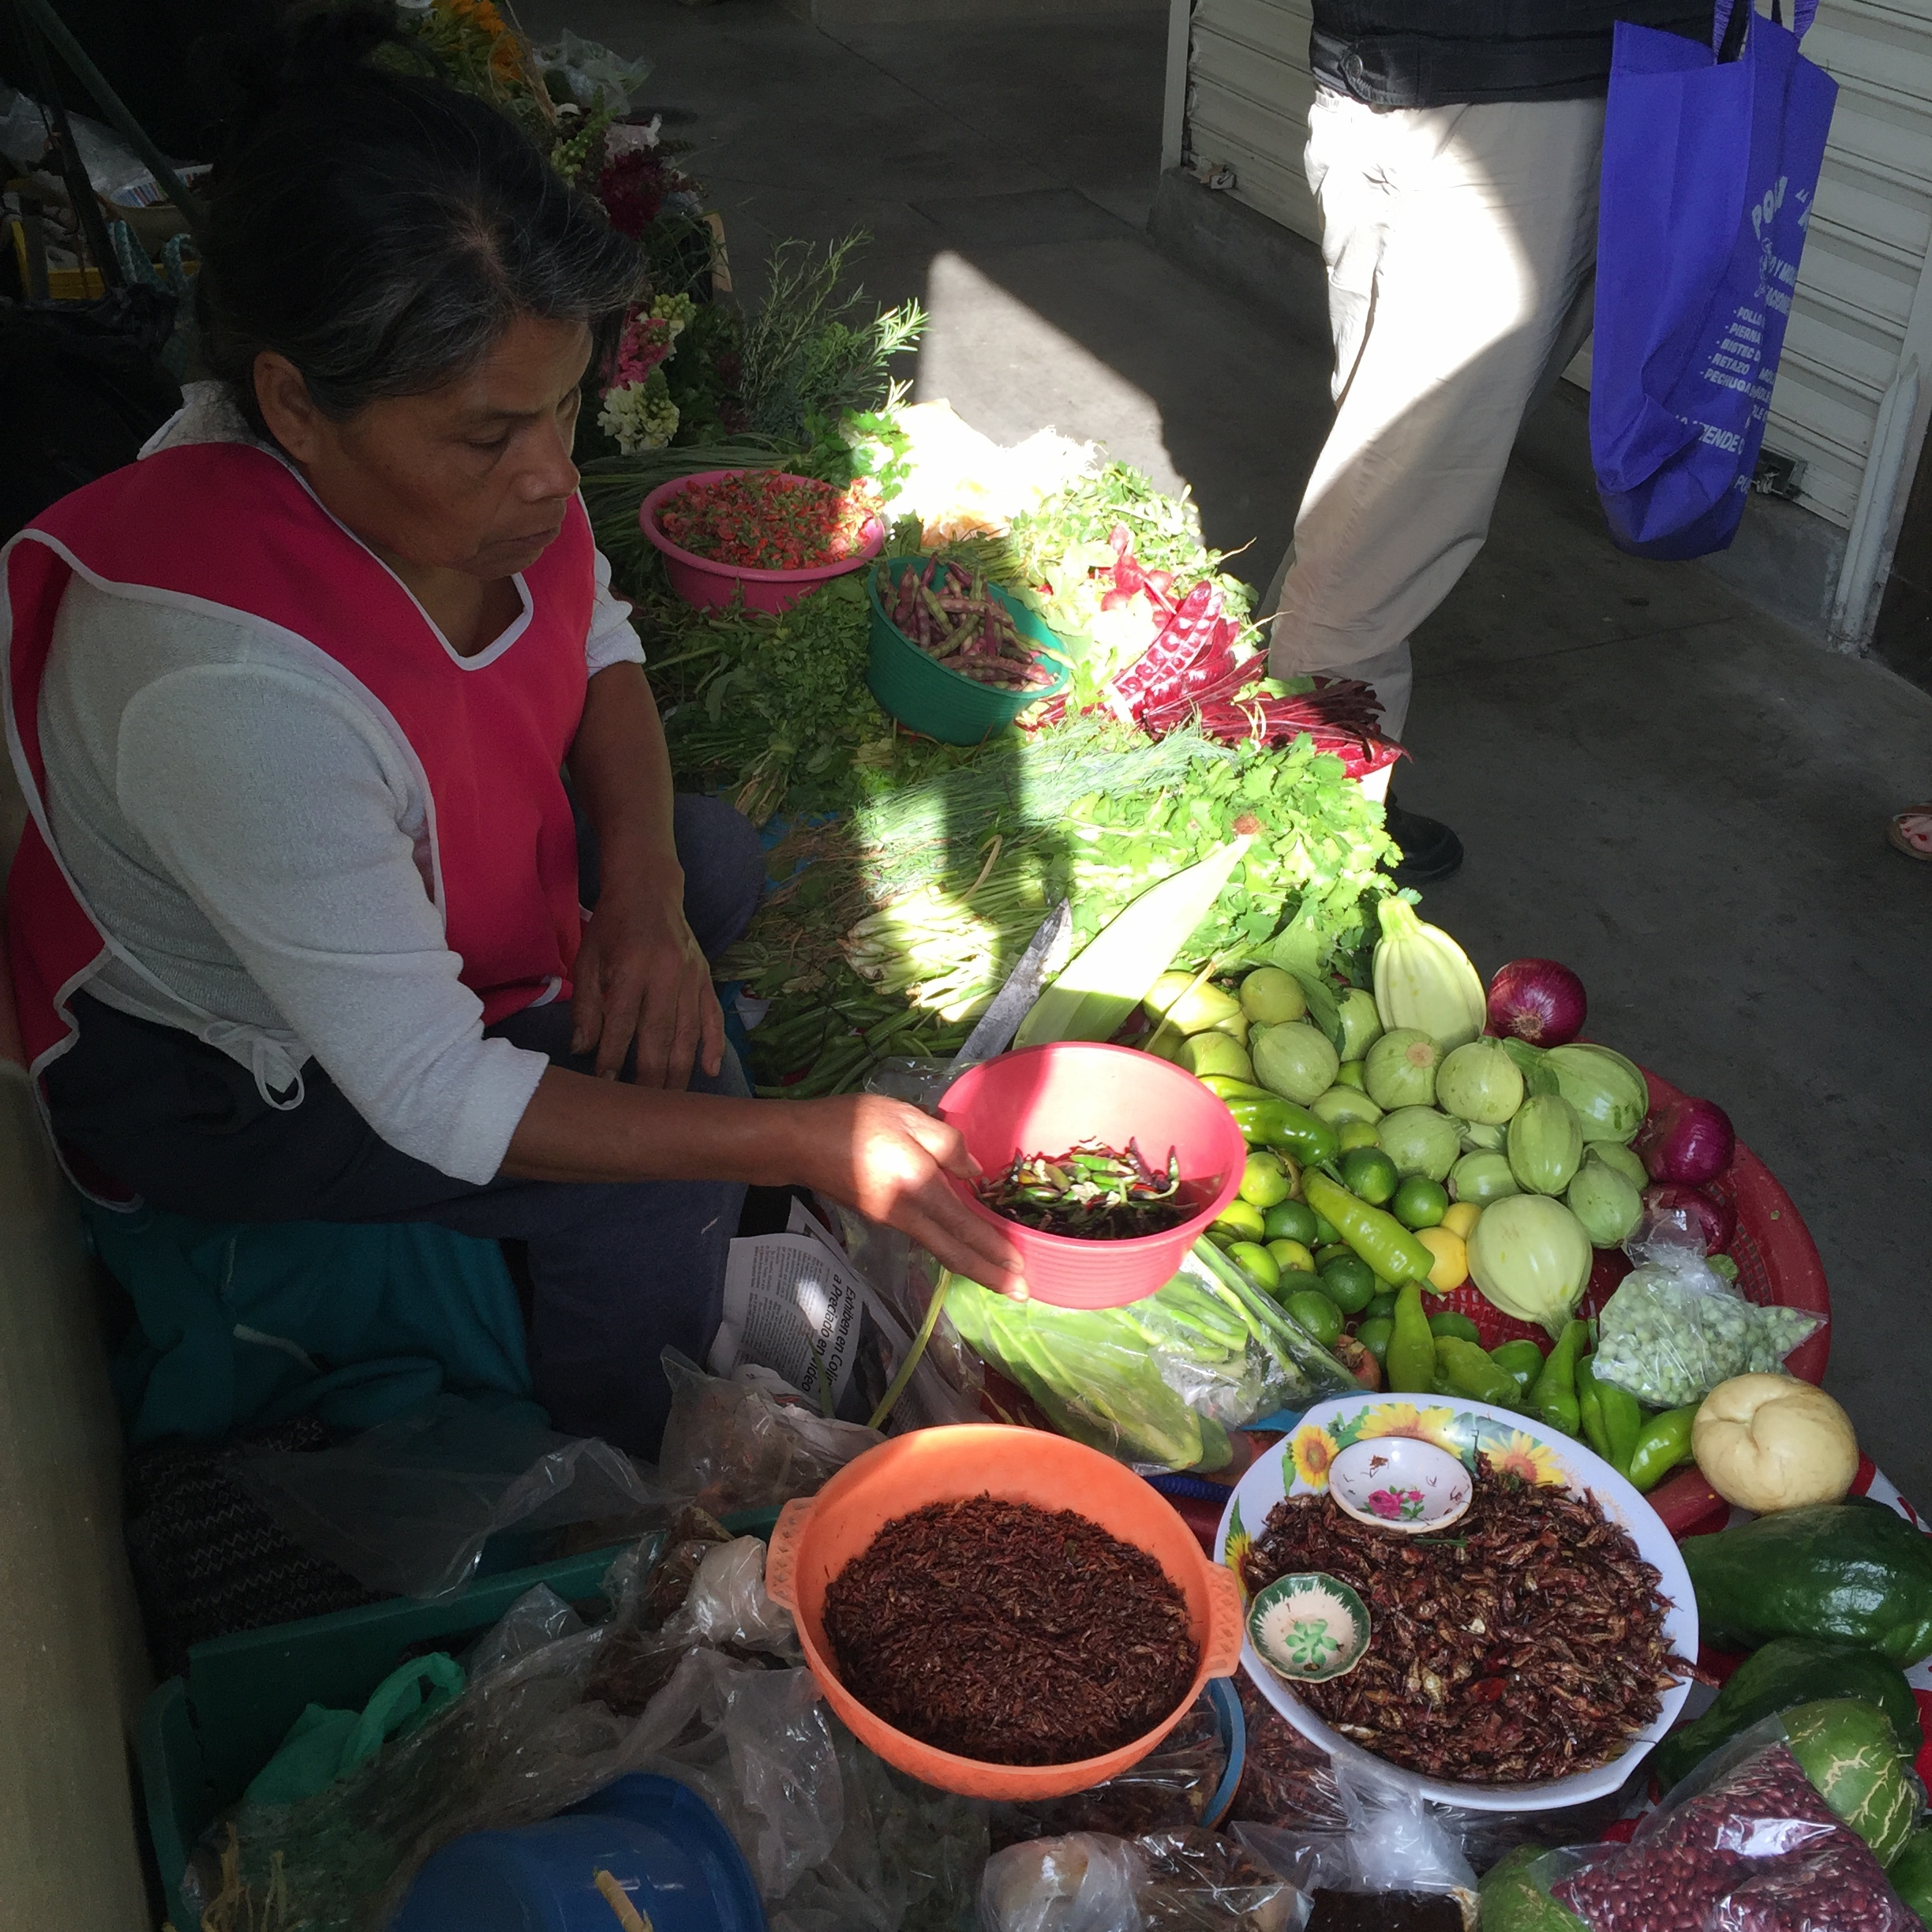 A vendor and her homegrown produce for sale at Mercado de la Merced (including dried crickets in the bottom of frame.)